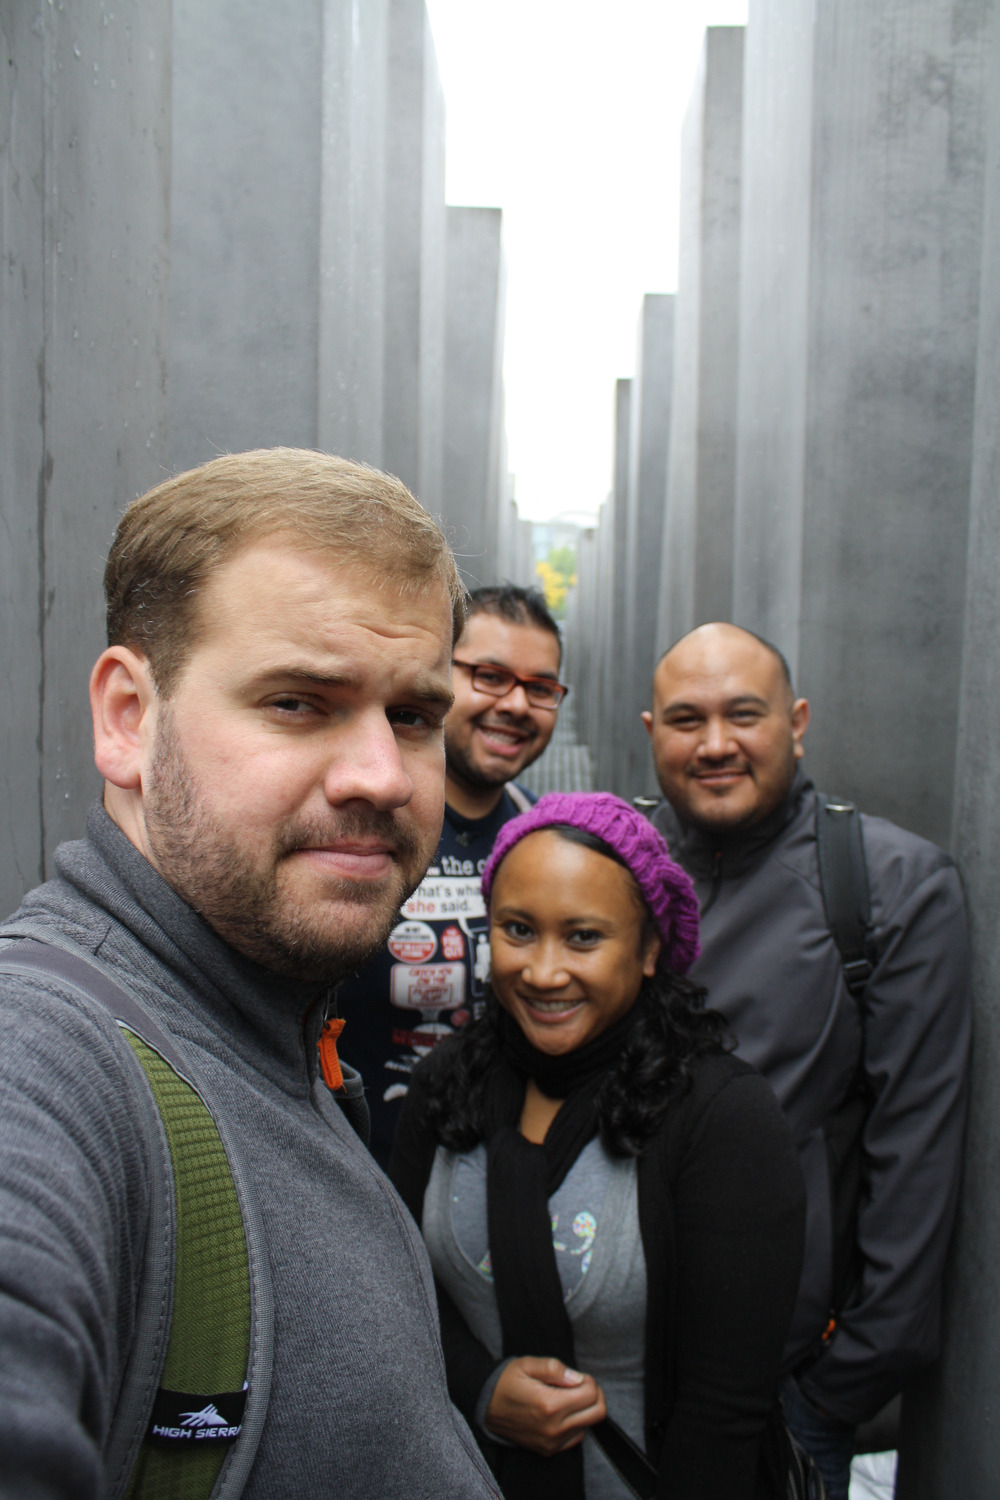 Clearly we don't know how to pose in a holocaust memorial.